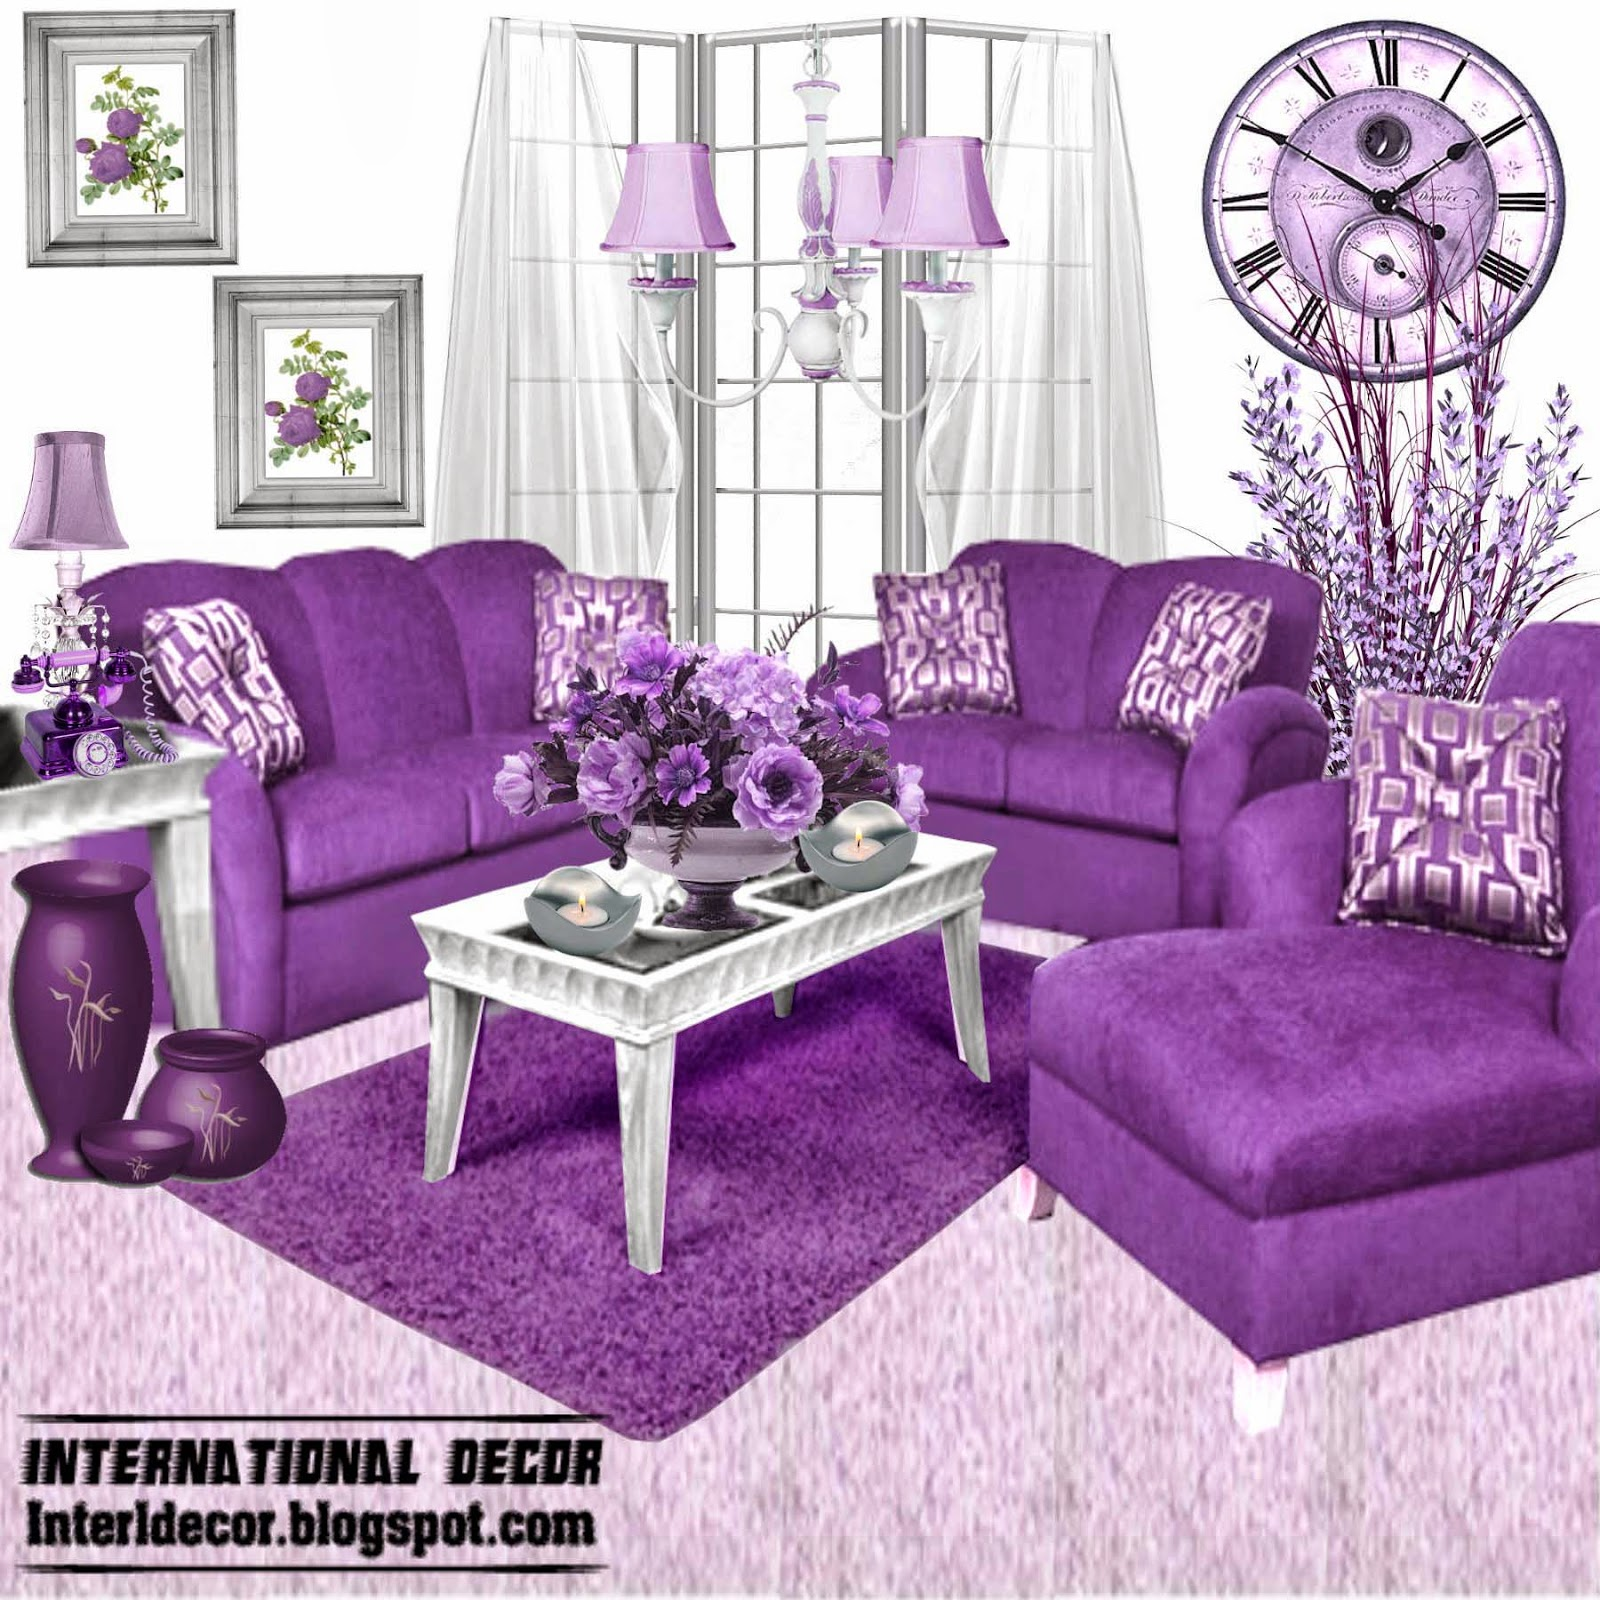 Luxury purple furniture sets sofas chairs for living for Living room set ideas